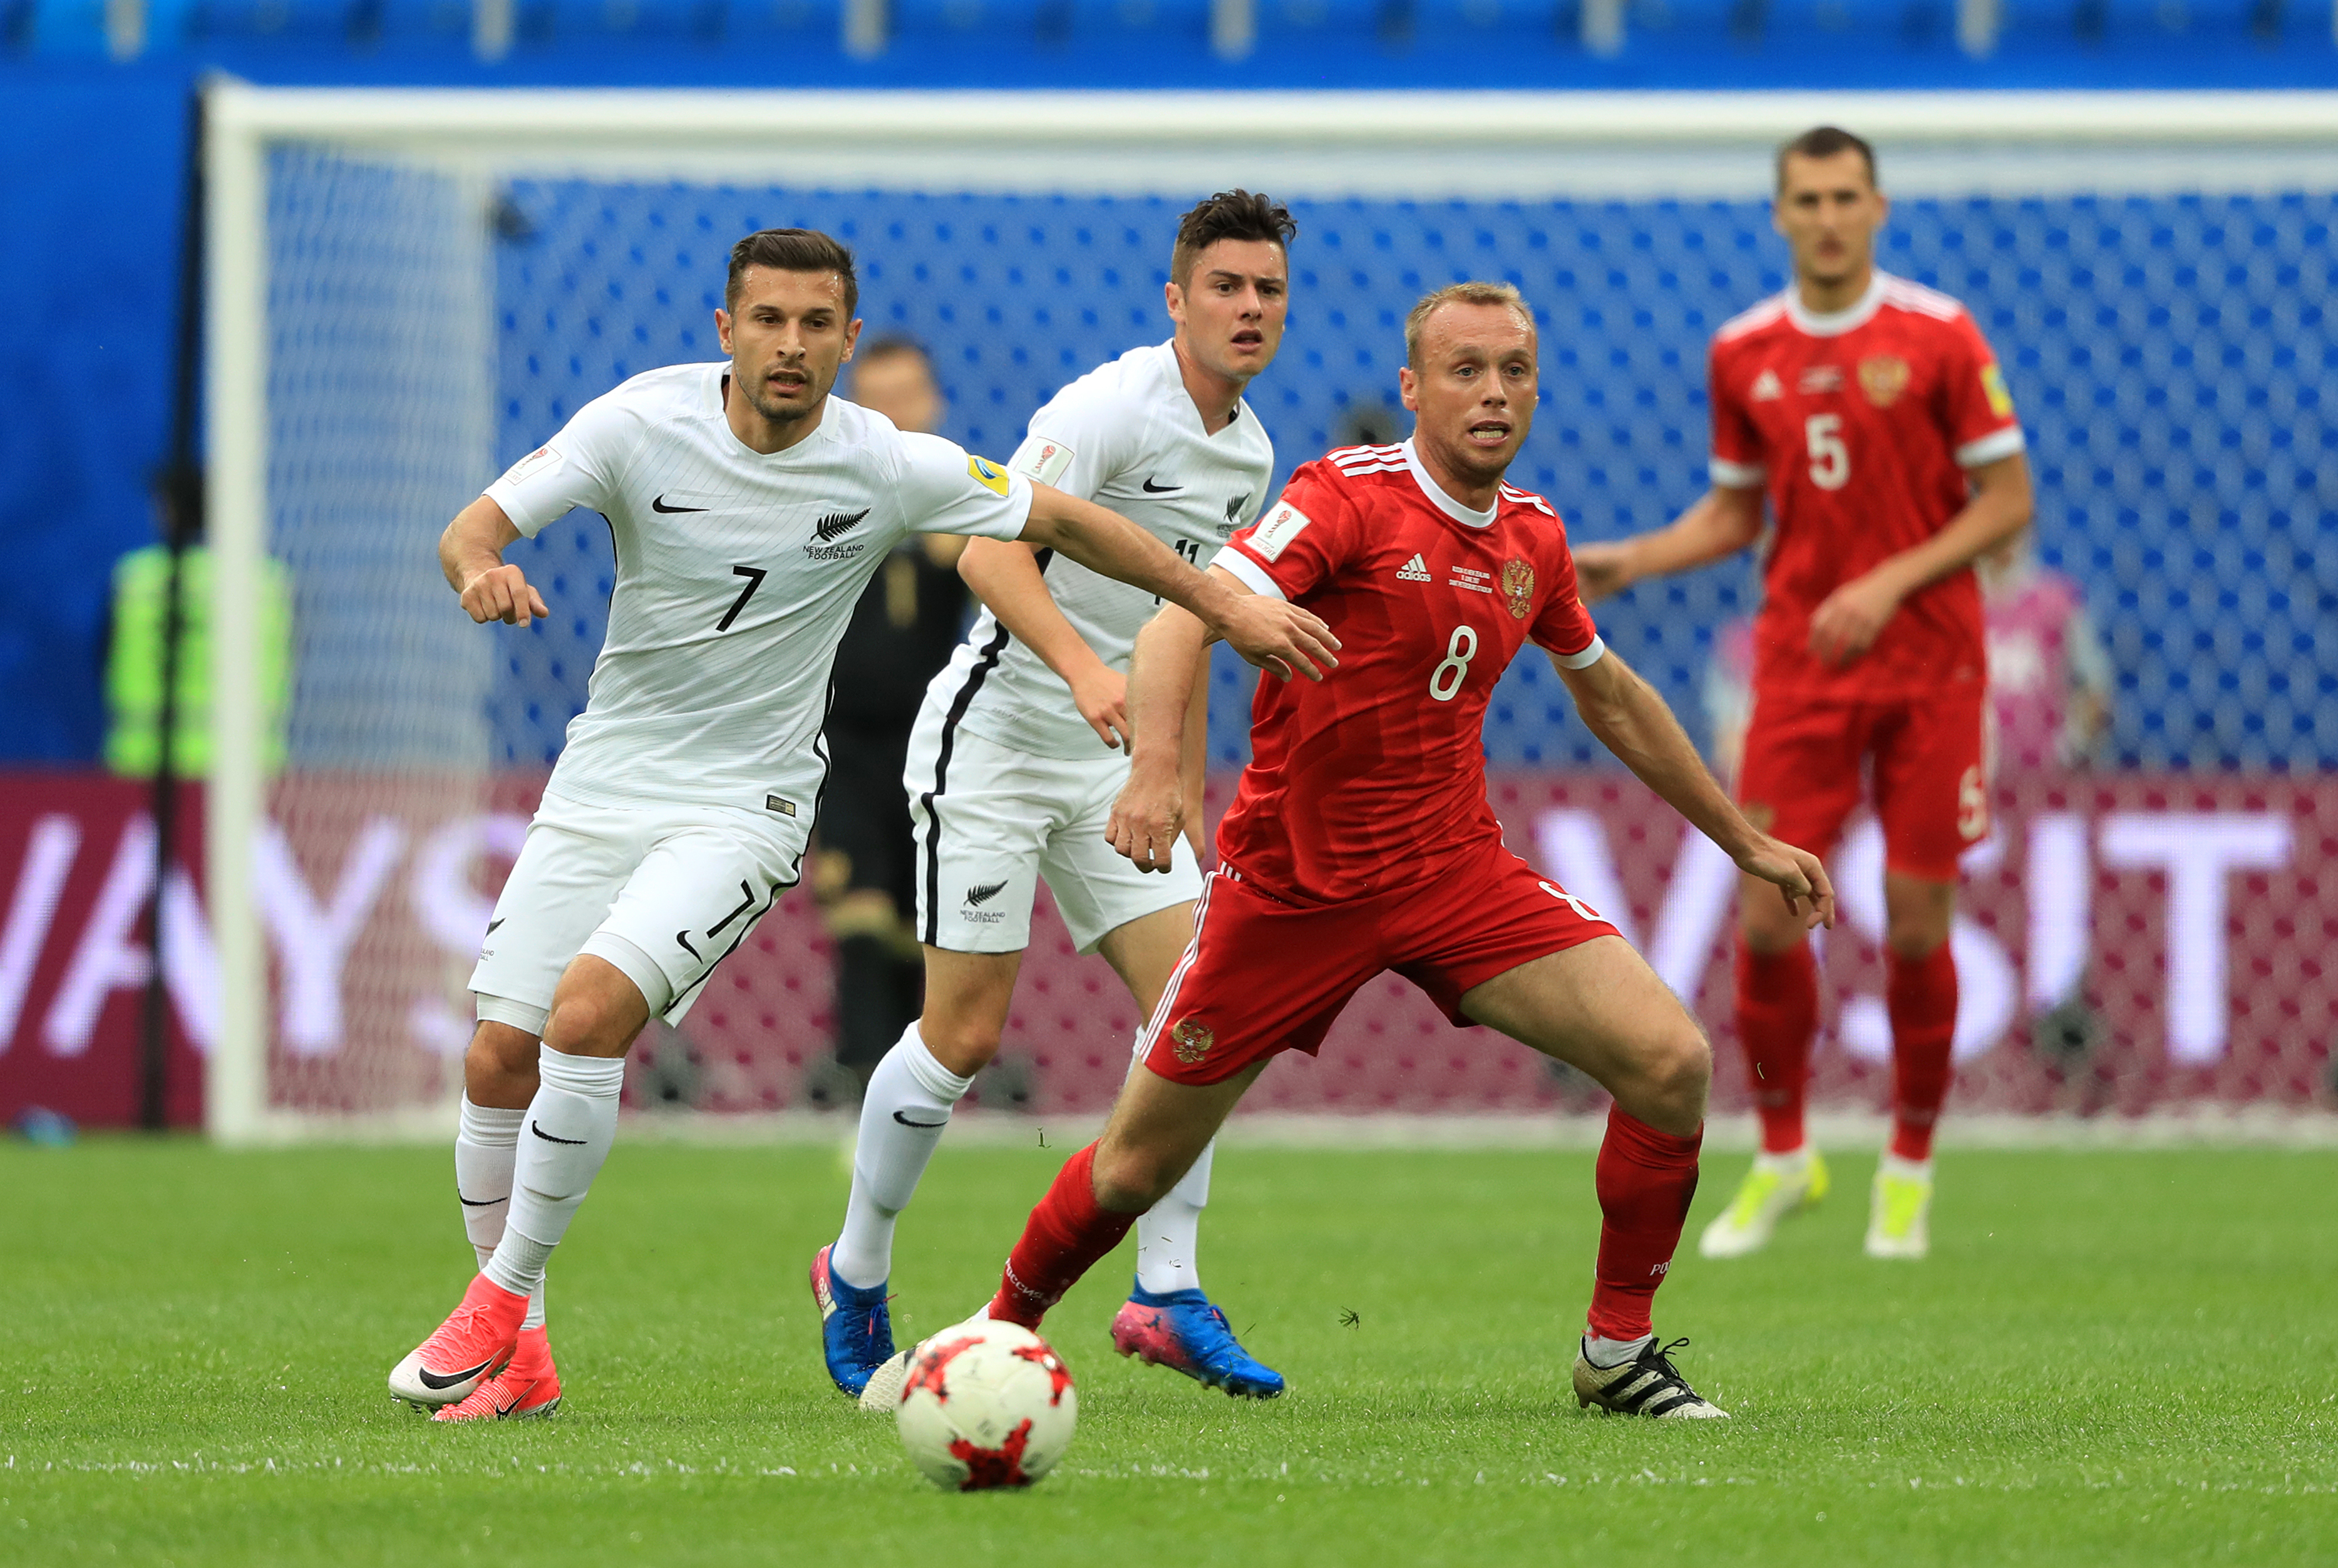 Russia v New Zealand at the 2017 Fifa Confederations Cup